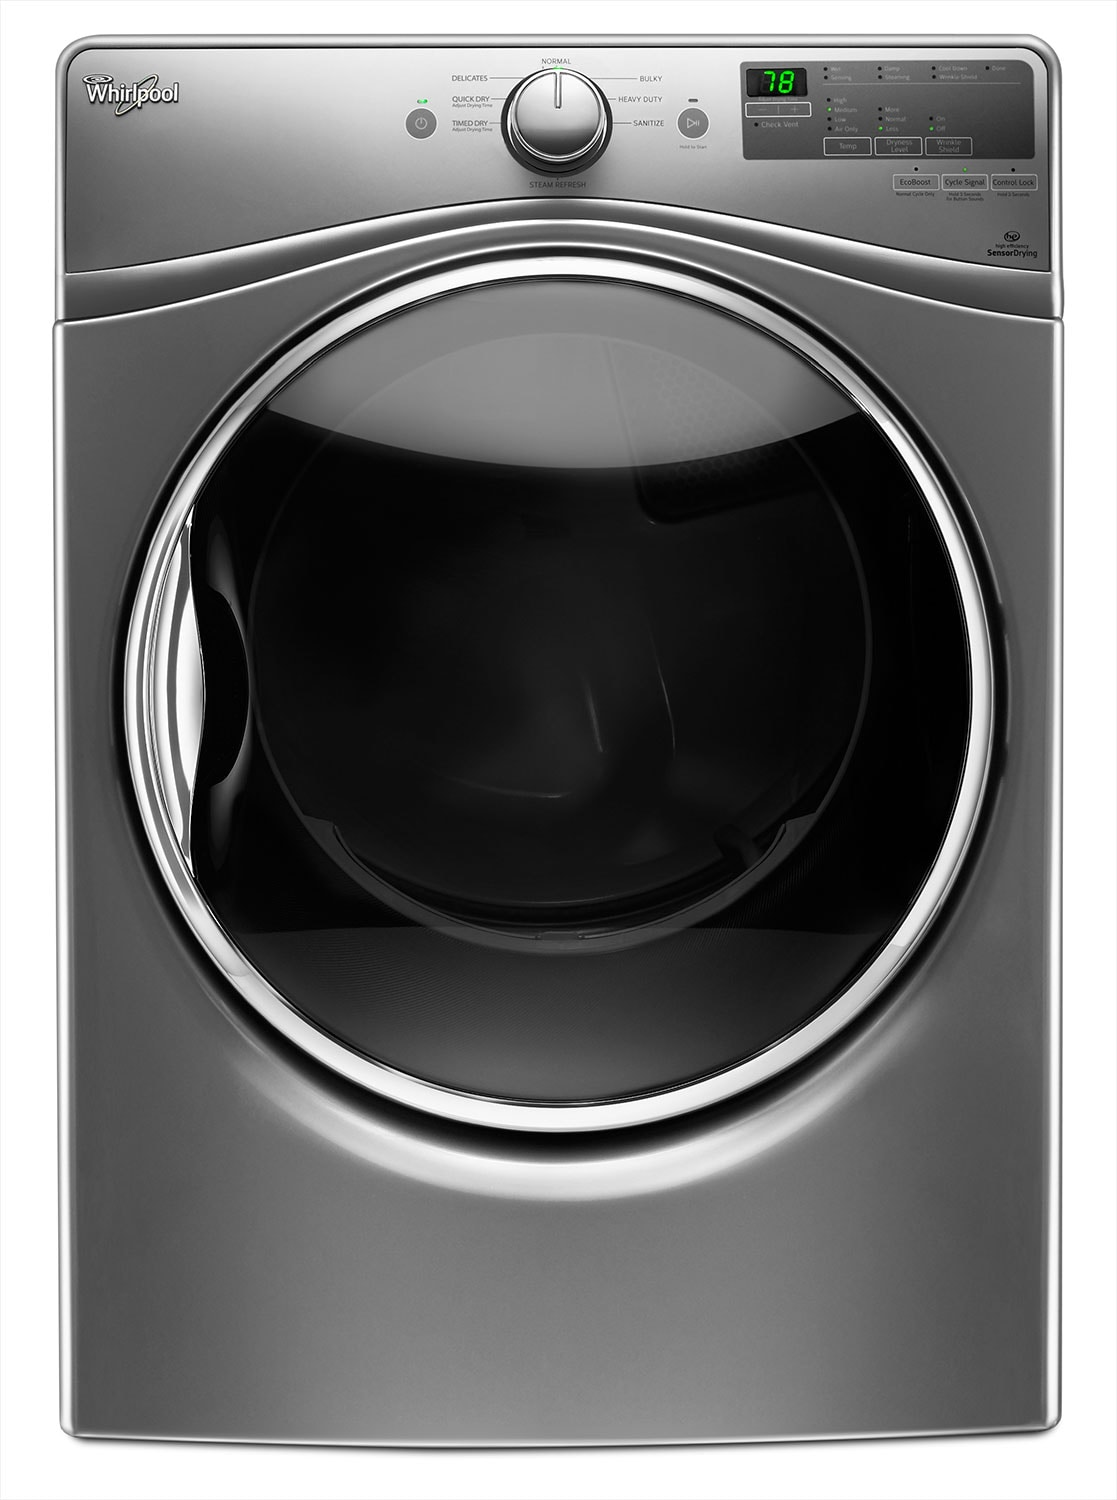 Whirlpool Chrome Shadow Electric Dryer (7.4 Cu. Ft.) - YWED85HEFC